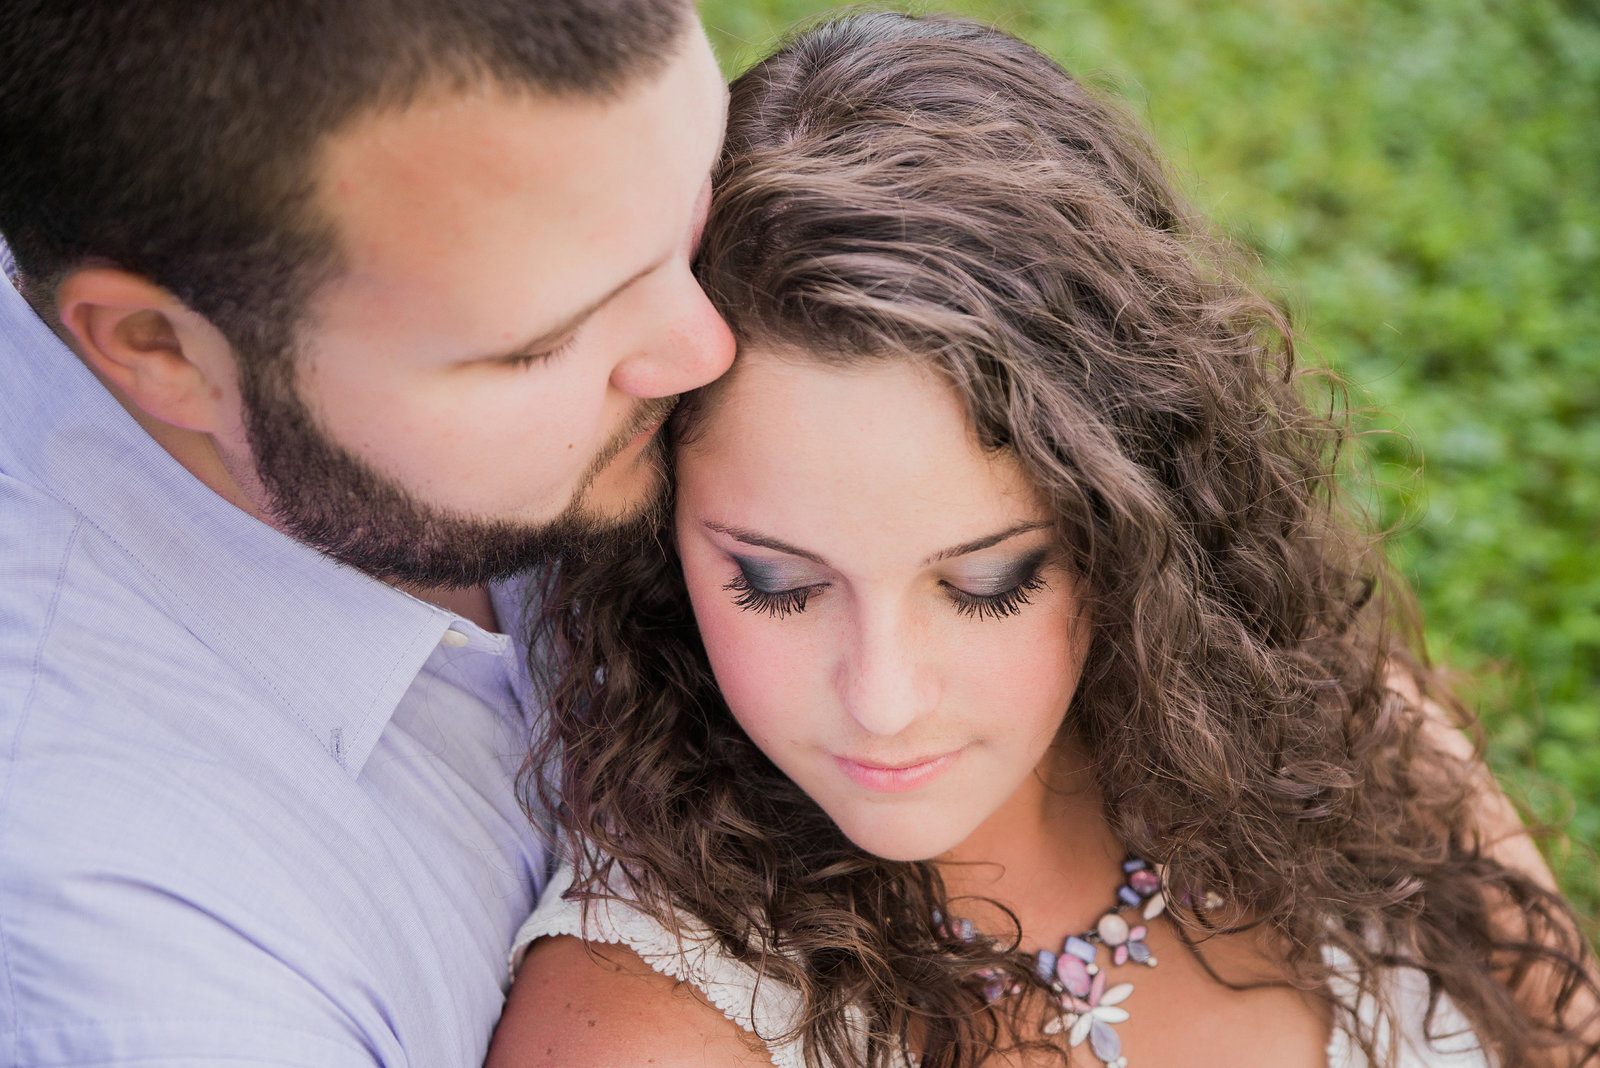 NJ_Rustic_Engagement_Photography017